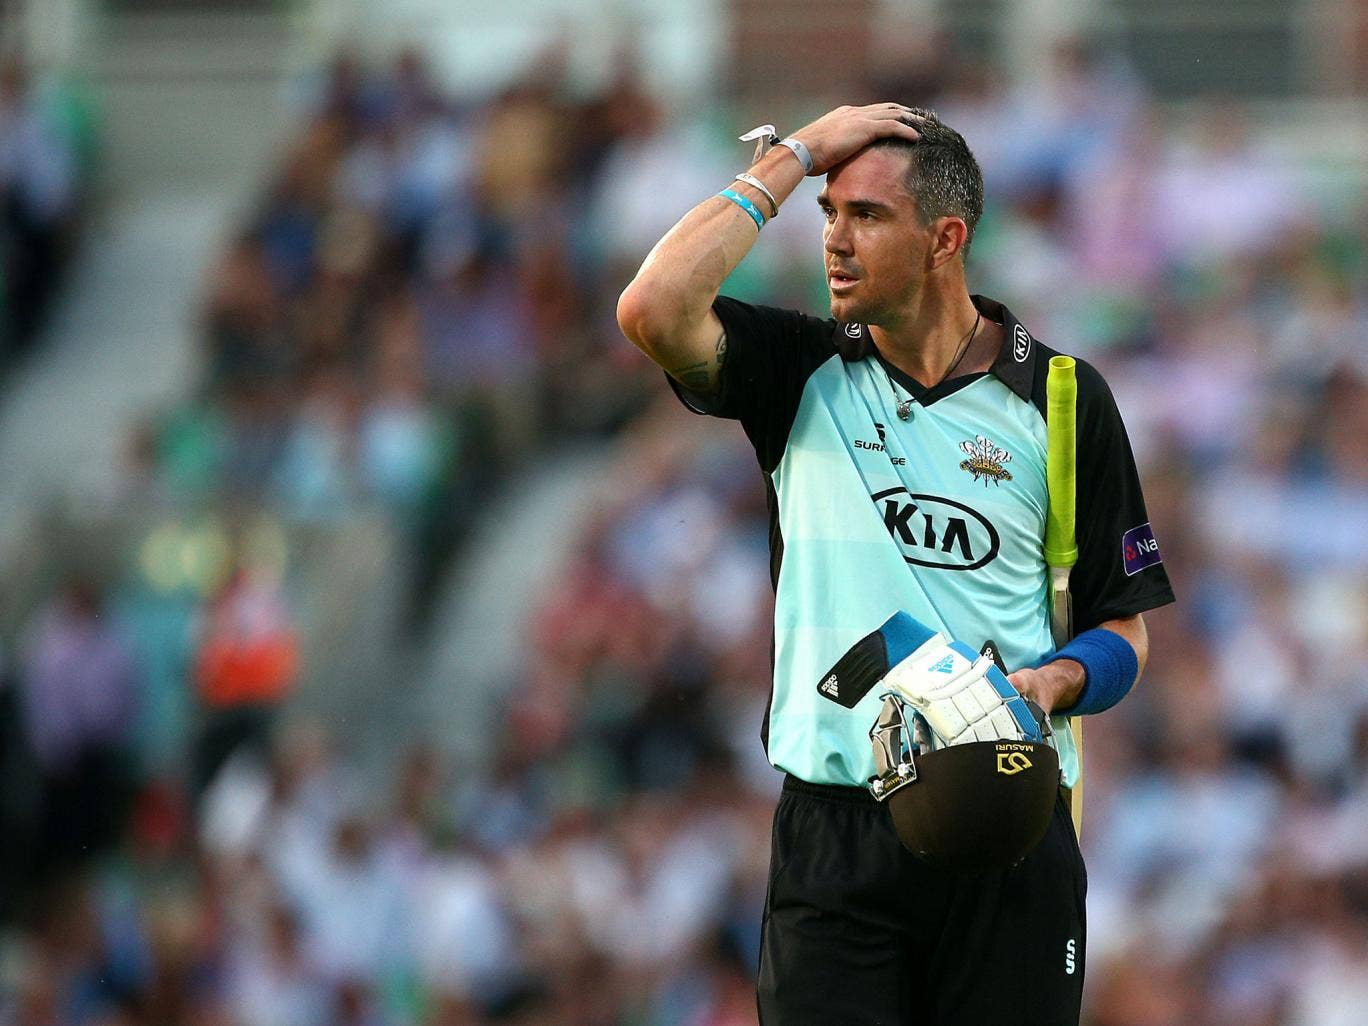 Kevin Pietersen walks off the pitch for Surrey after being dismissed